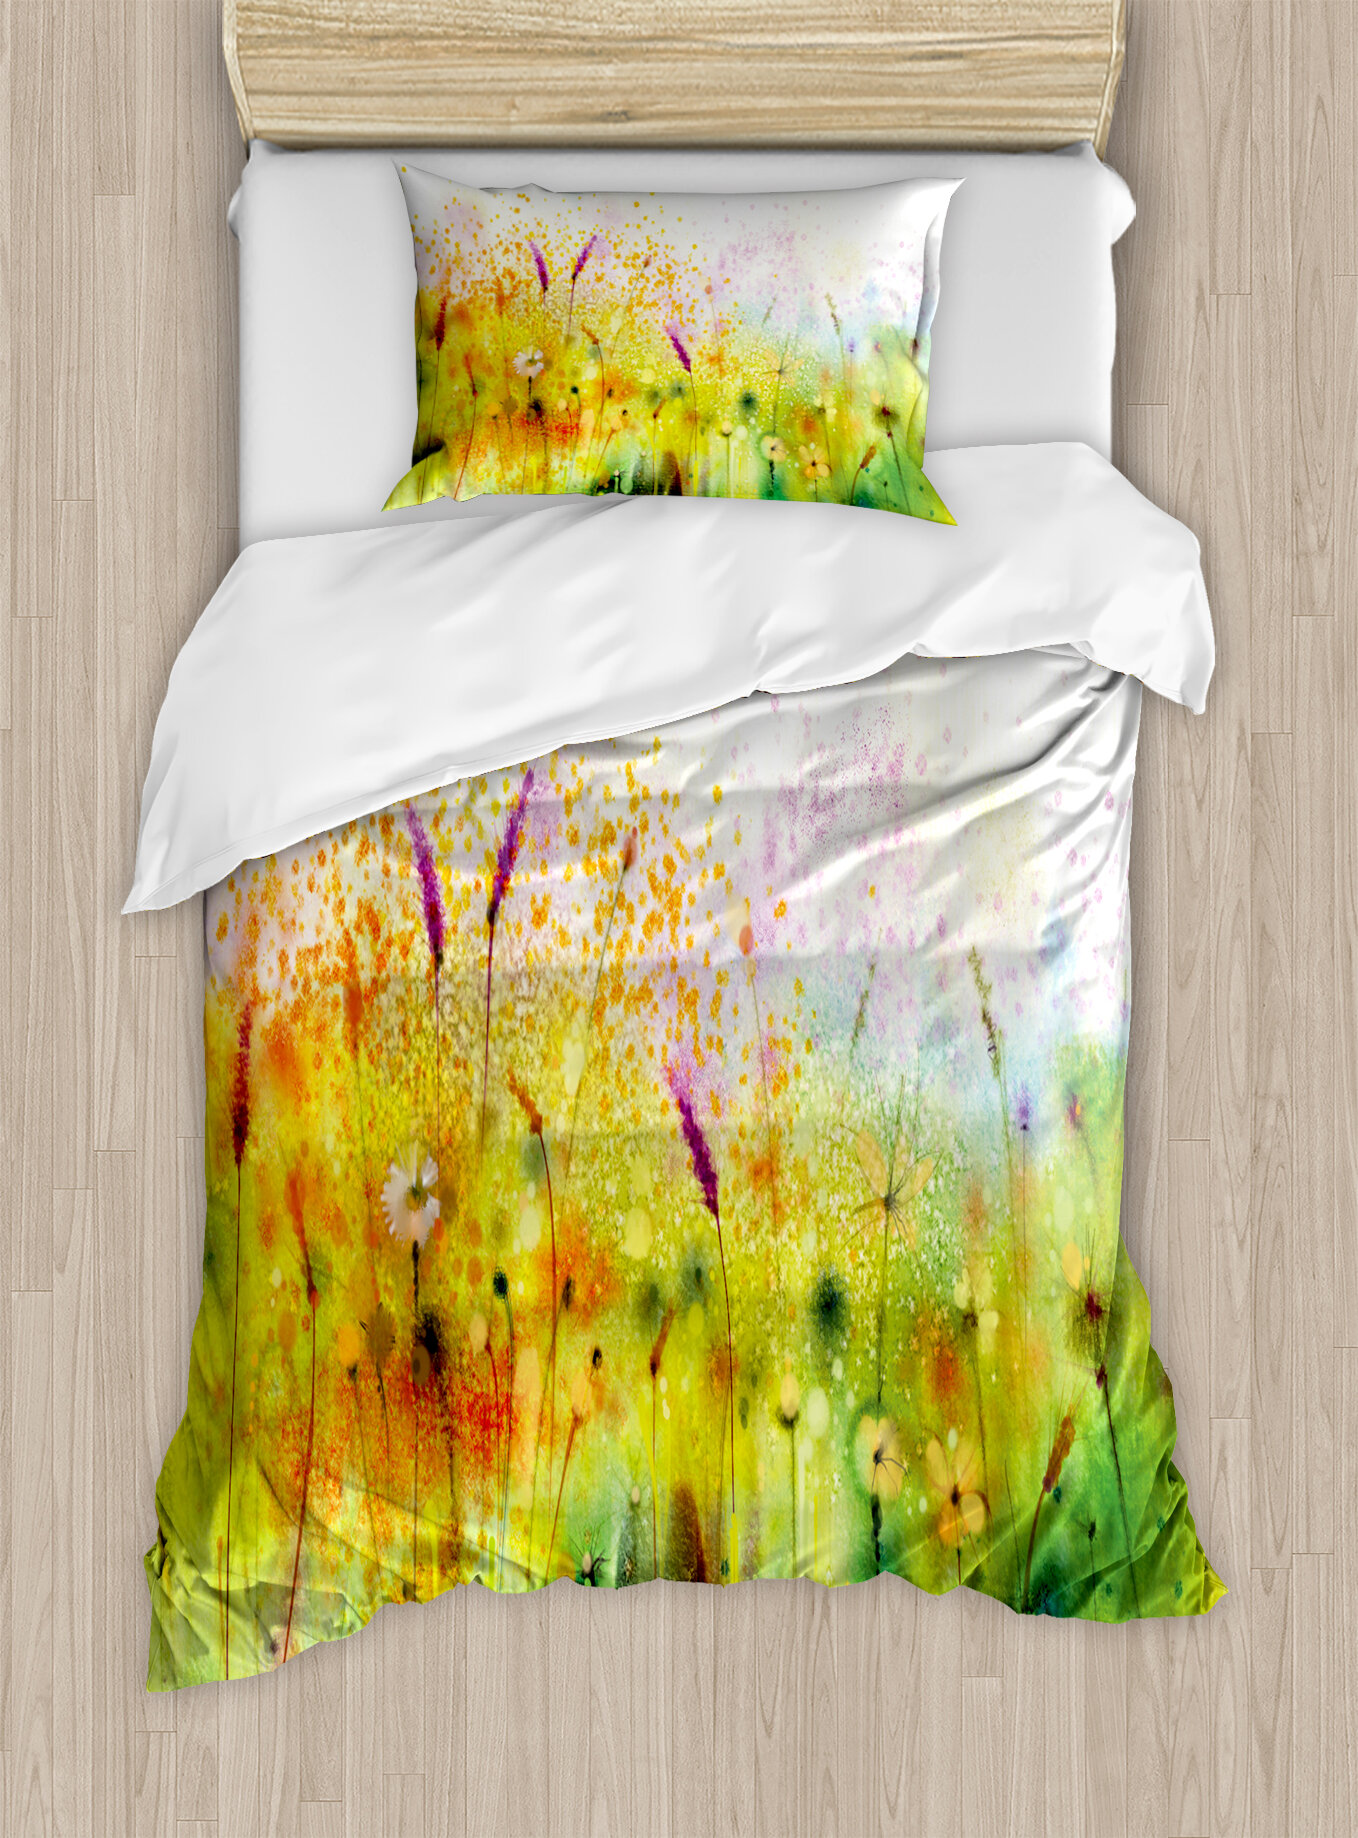 Ambesonne Flower Flat Sheet Multicolor Dandelions Featured in Garden Brushstrokes Watercolored Abstract Landscape Art Twin Size Soft Comfortable Top Sheet Decorative Bedding 1 Piece